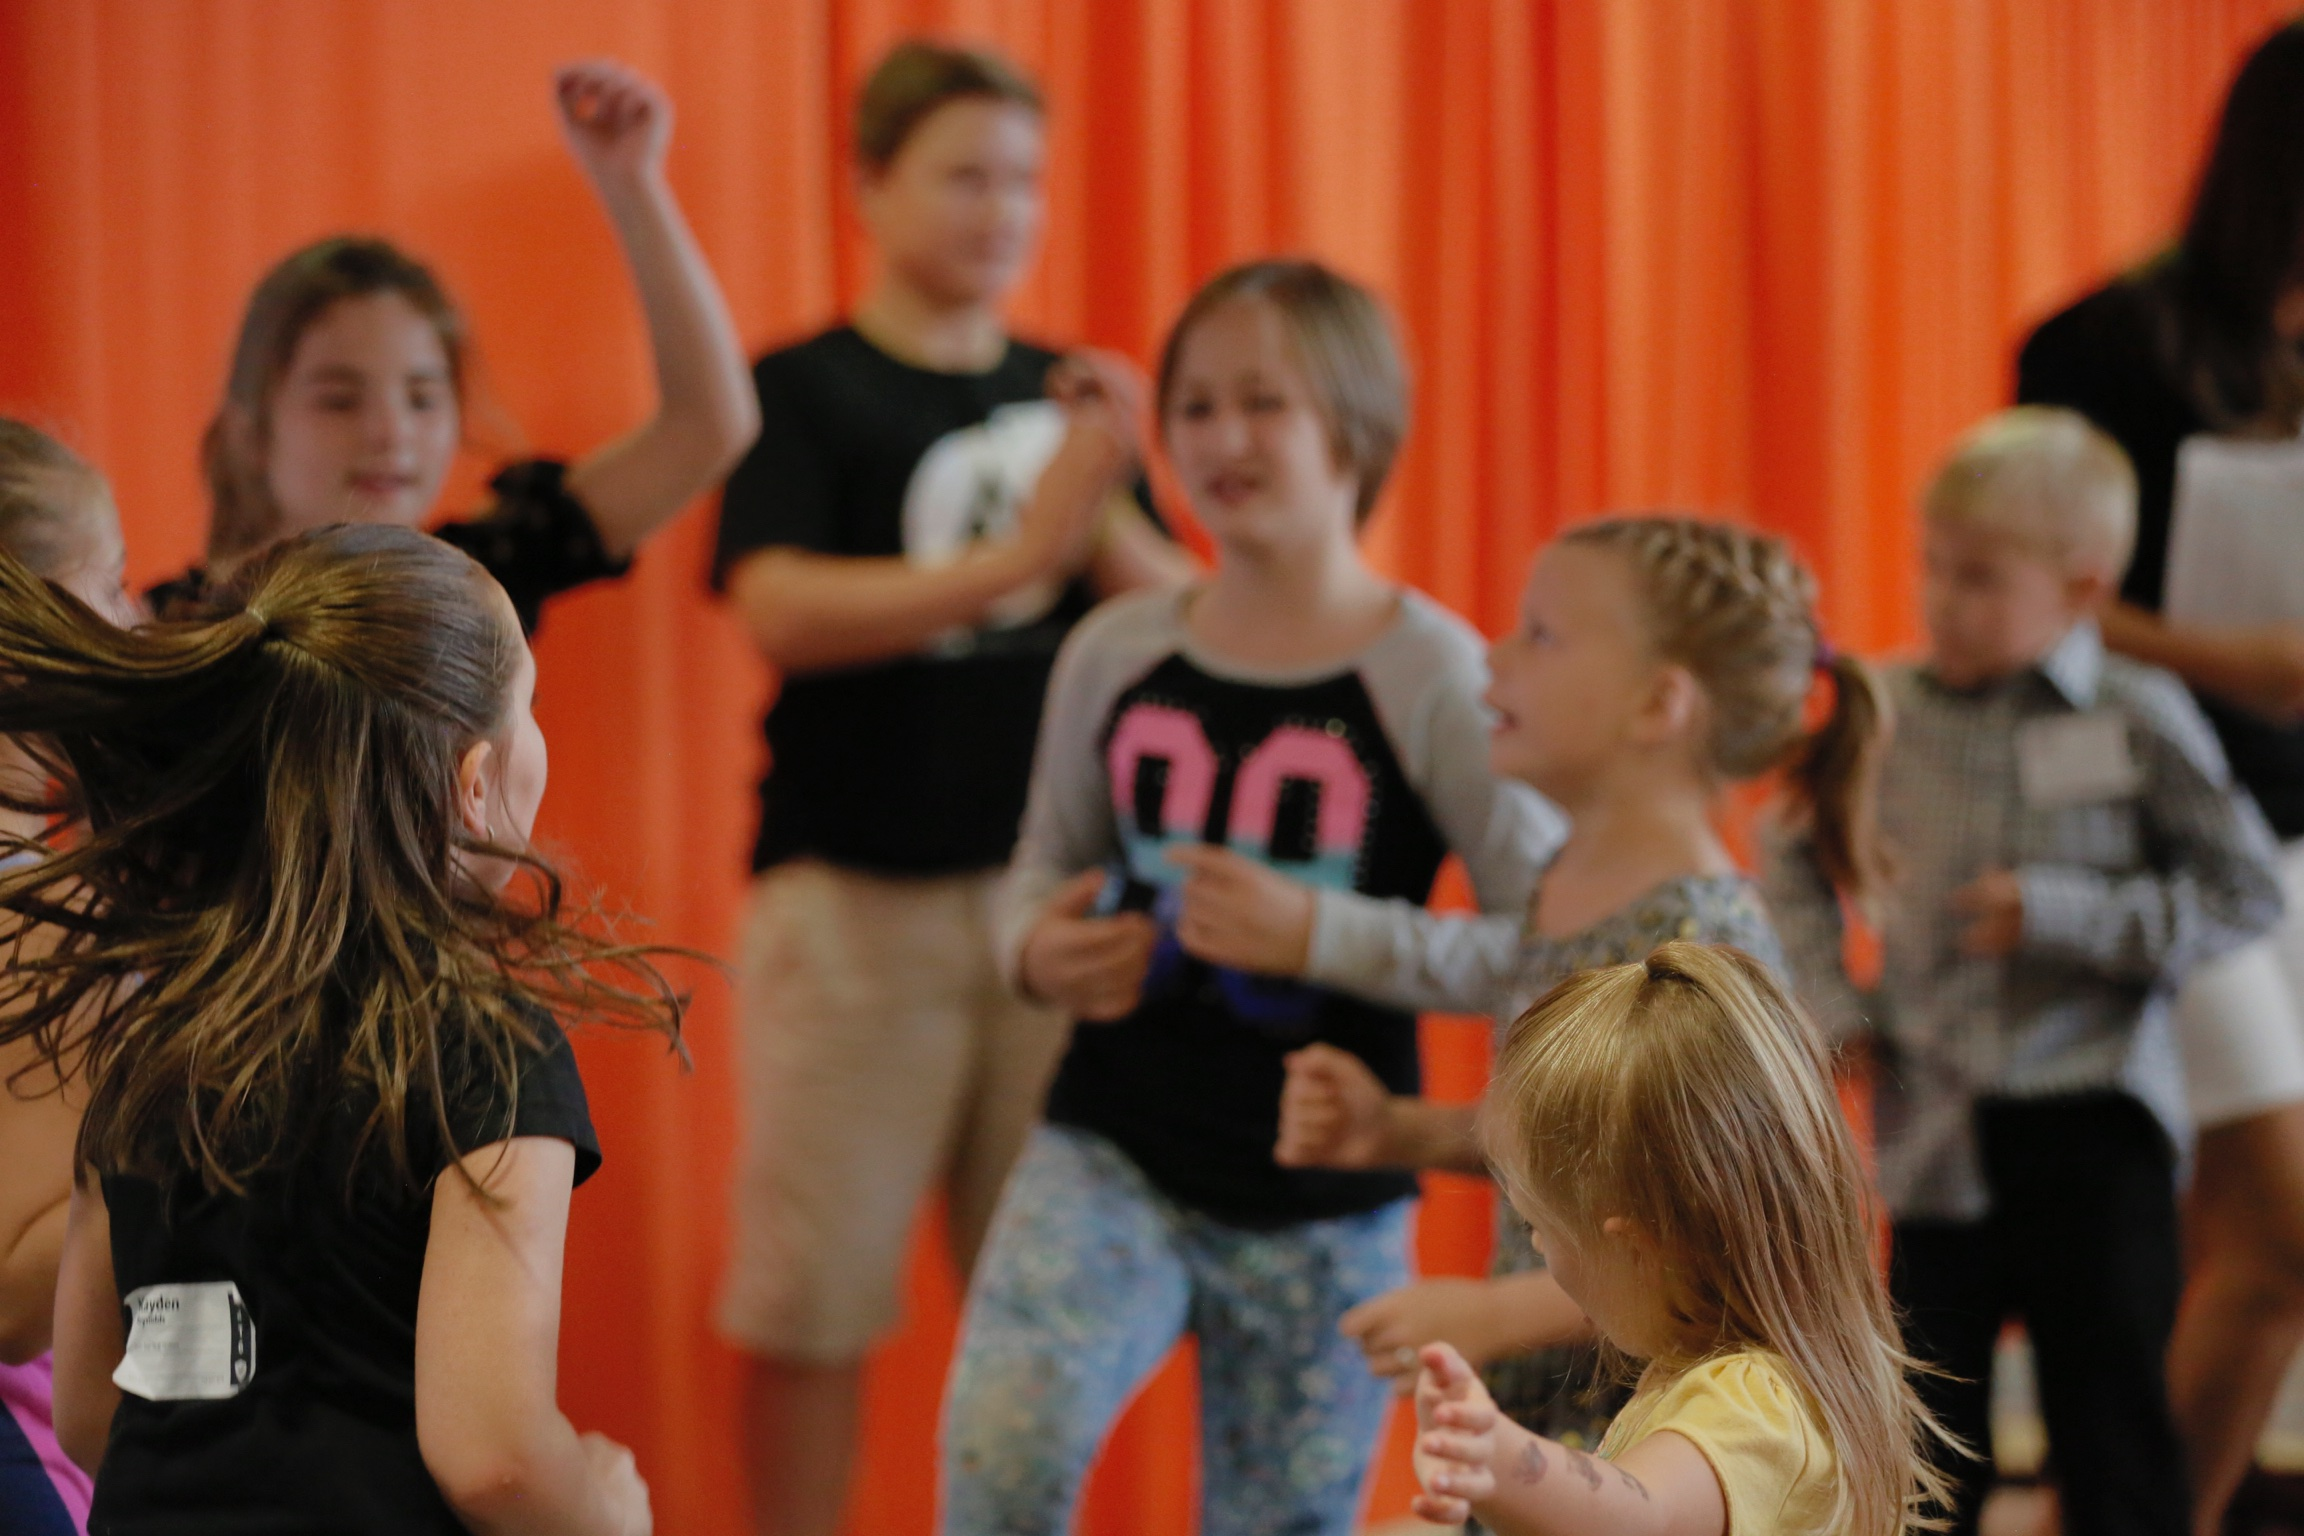 ELEMENTARY   Kindergarten through 5th grade children will love our Alive Kids Elementary services! Full of interactive, age-appropriate learning to open your child's heart to God's love. The elementary experience has worship, video message, live teaching, small group break off and games & inflatables as well.